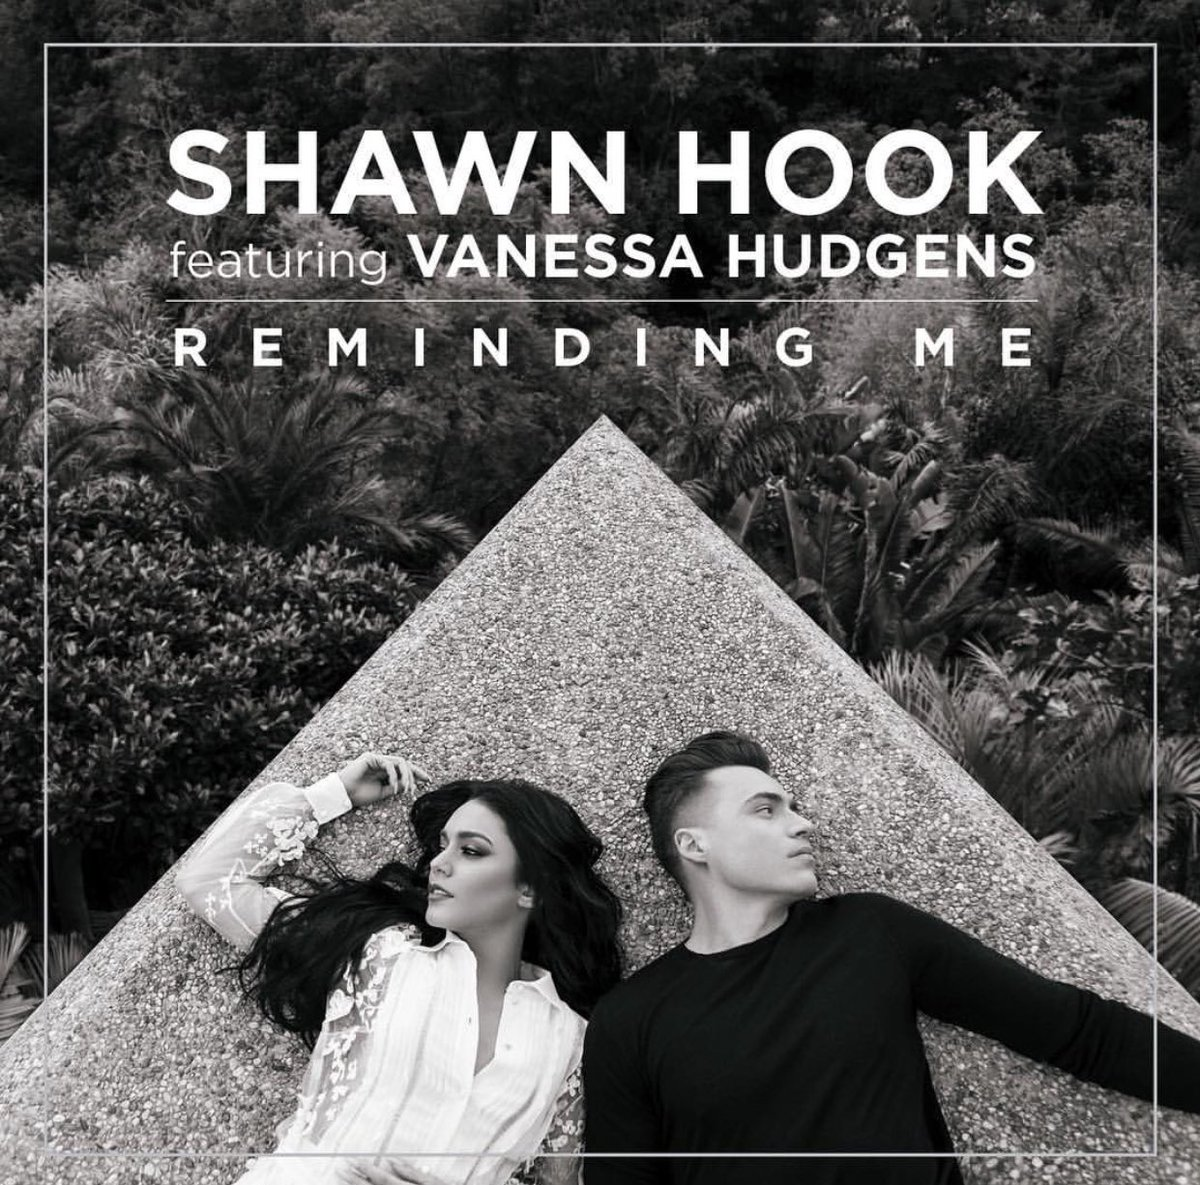 #RemindingMe is now Gold certified in #Canada  Thanks to all of you who&#39;ve supported this from the get go!  @vanessahudgens <br>http://pic.twitter.com/YzGb64fdGw